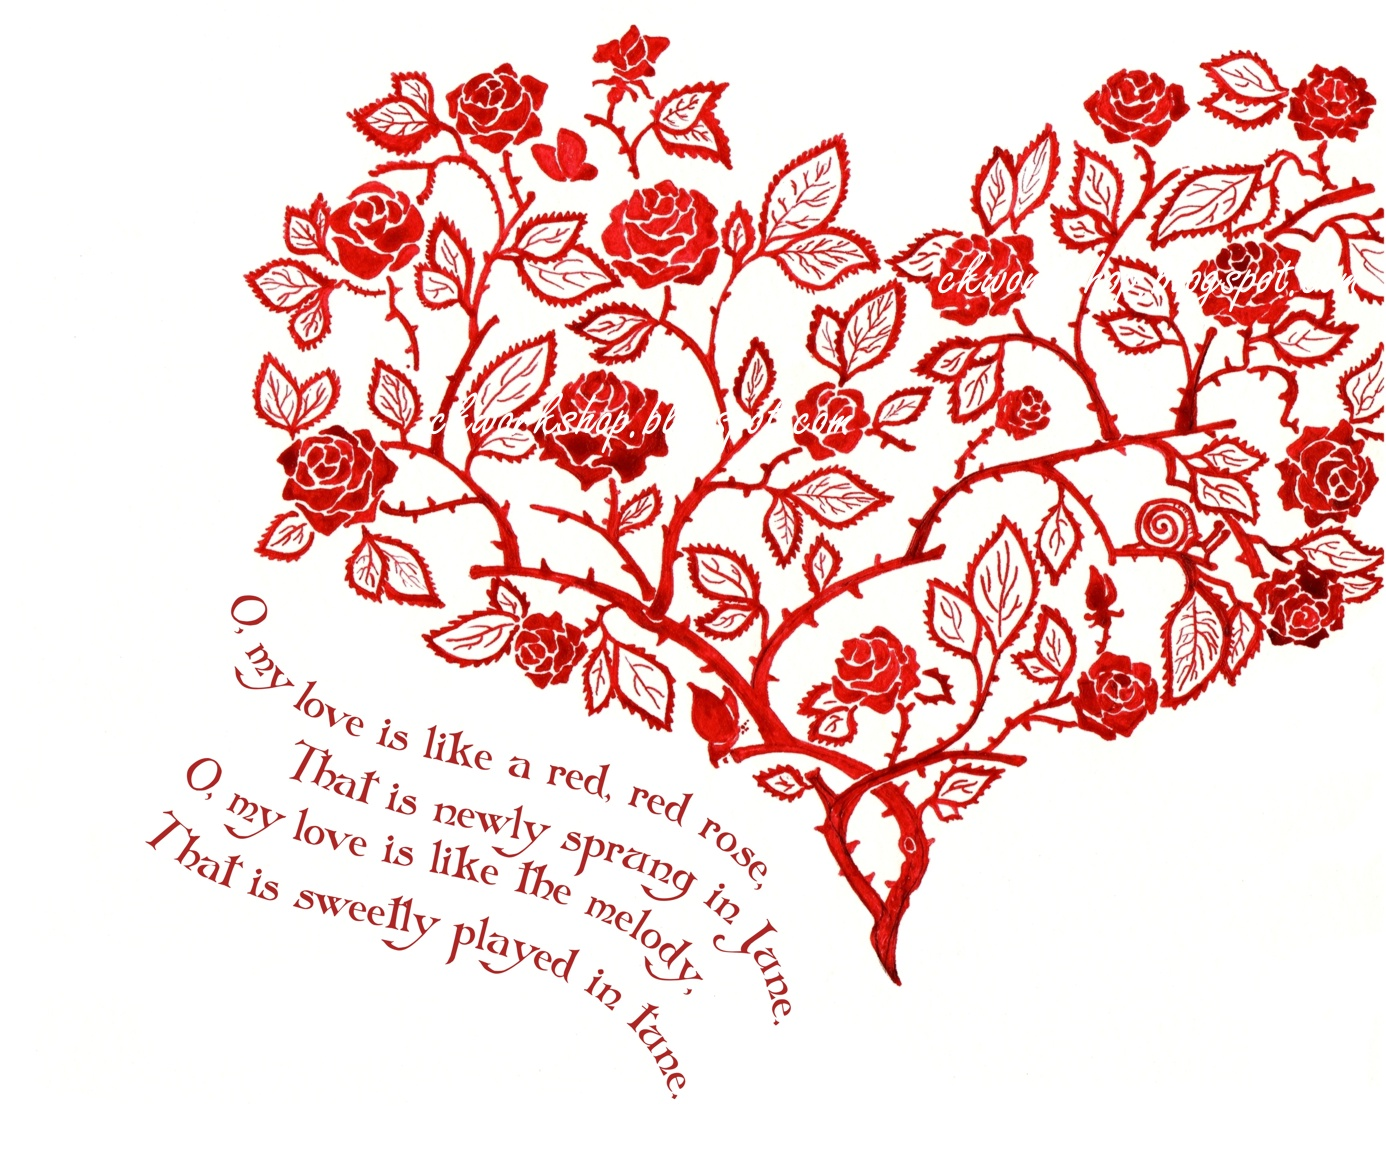 """a red red rose essay In """"red rose"""" this essay will ventilate the poem muteshagusto analysis of the """"red, red rose"""" by richard burns."""